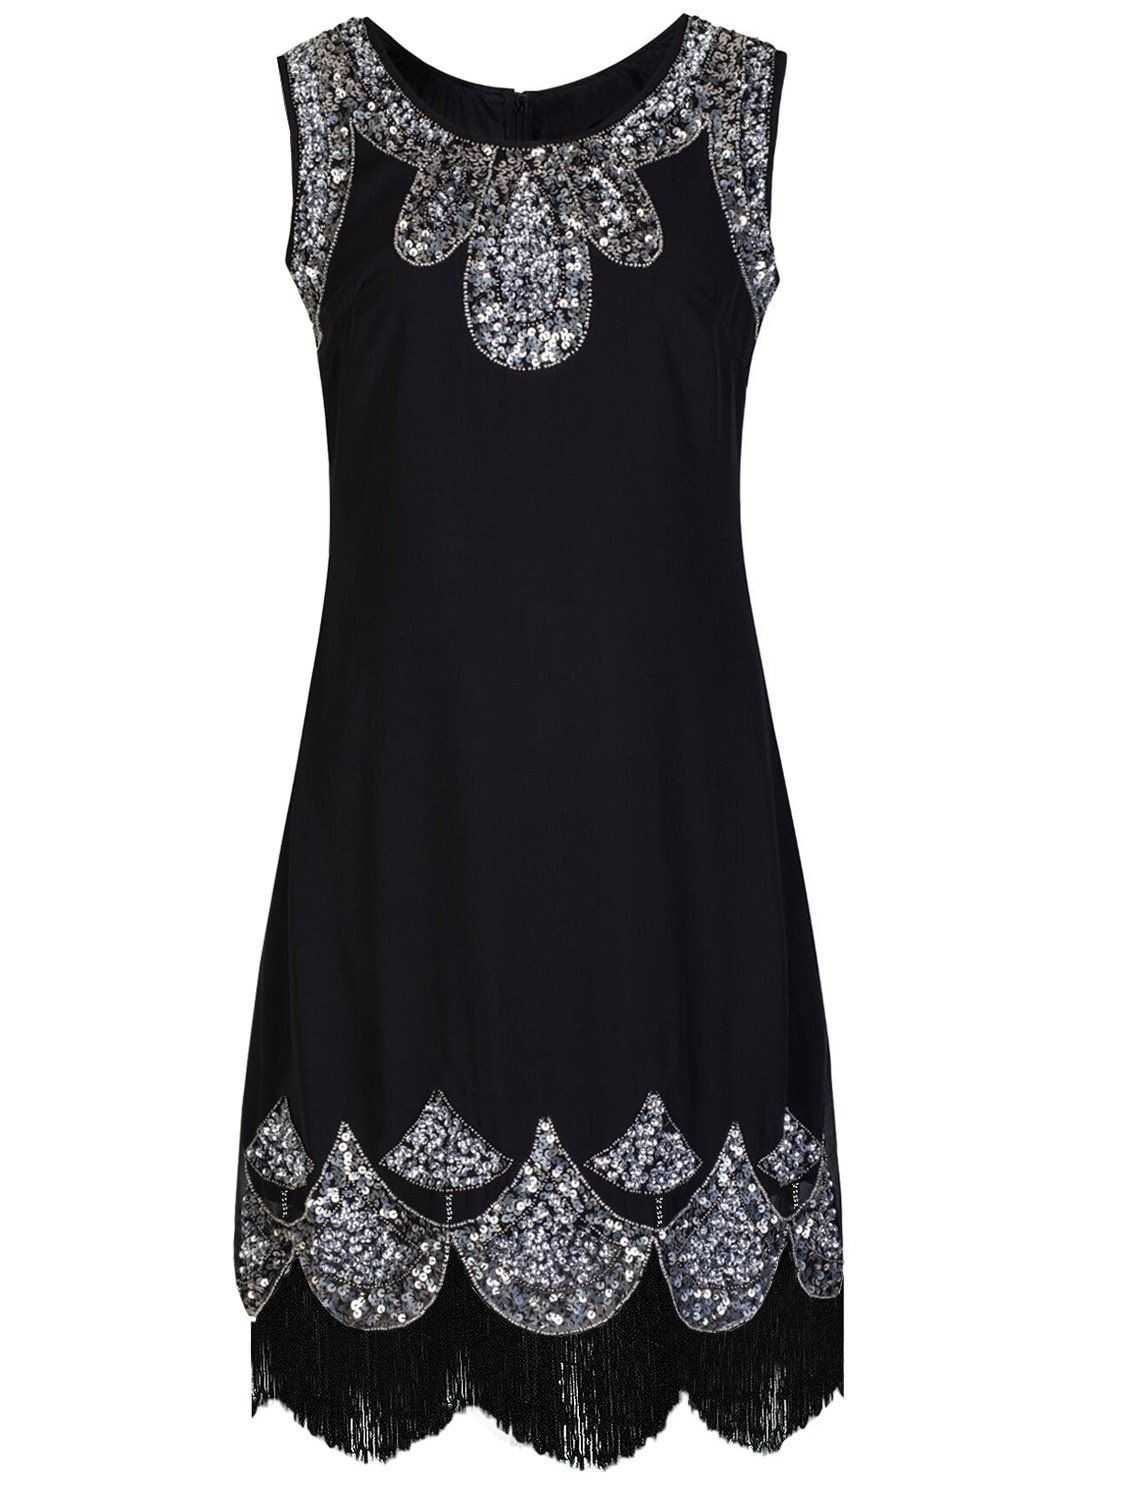 Black dress jcpenney - Vijiv Women S 1920s Vintage Embellished Sequin Beaded Flapper Evening Dress At Amazon Women S Clothing Store